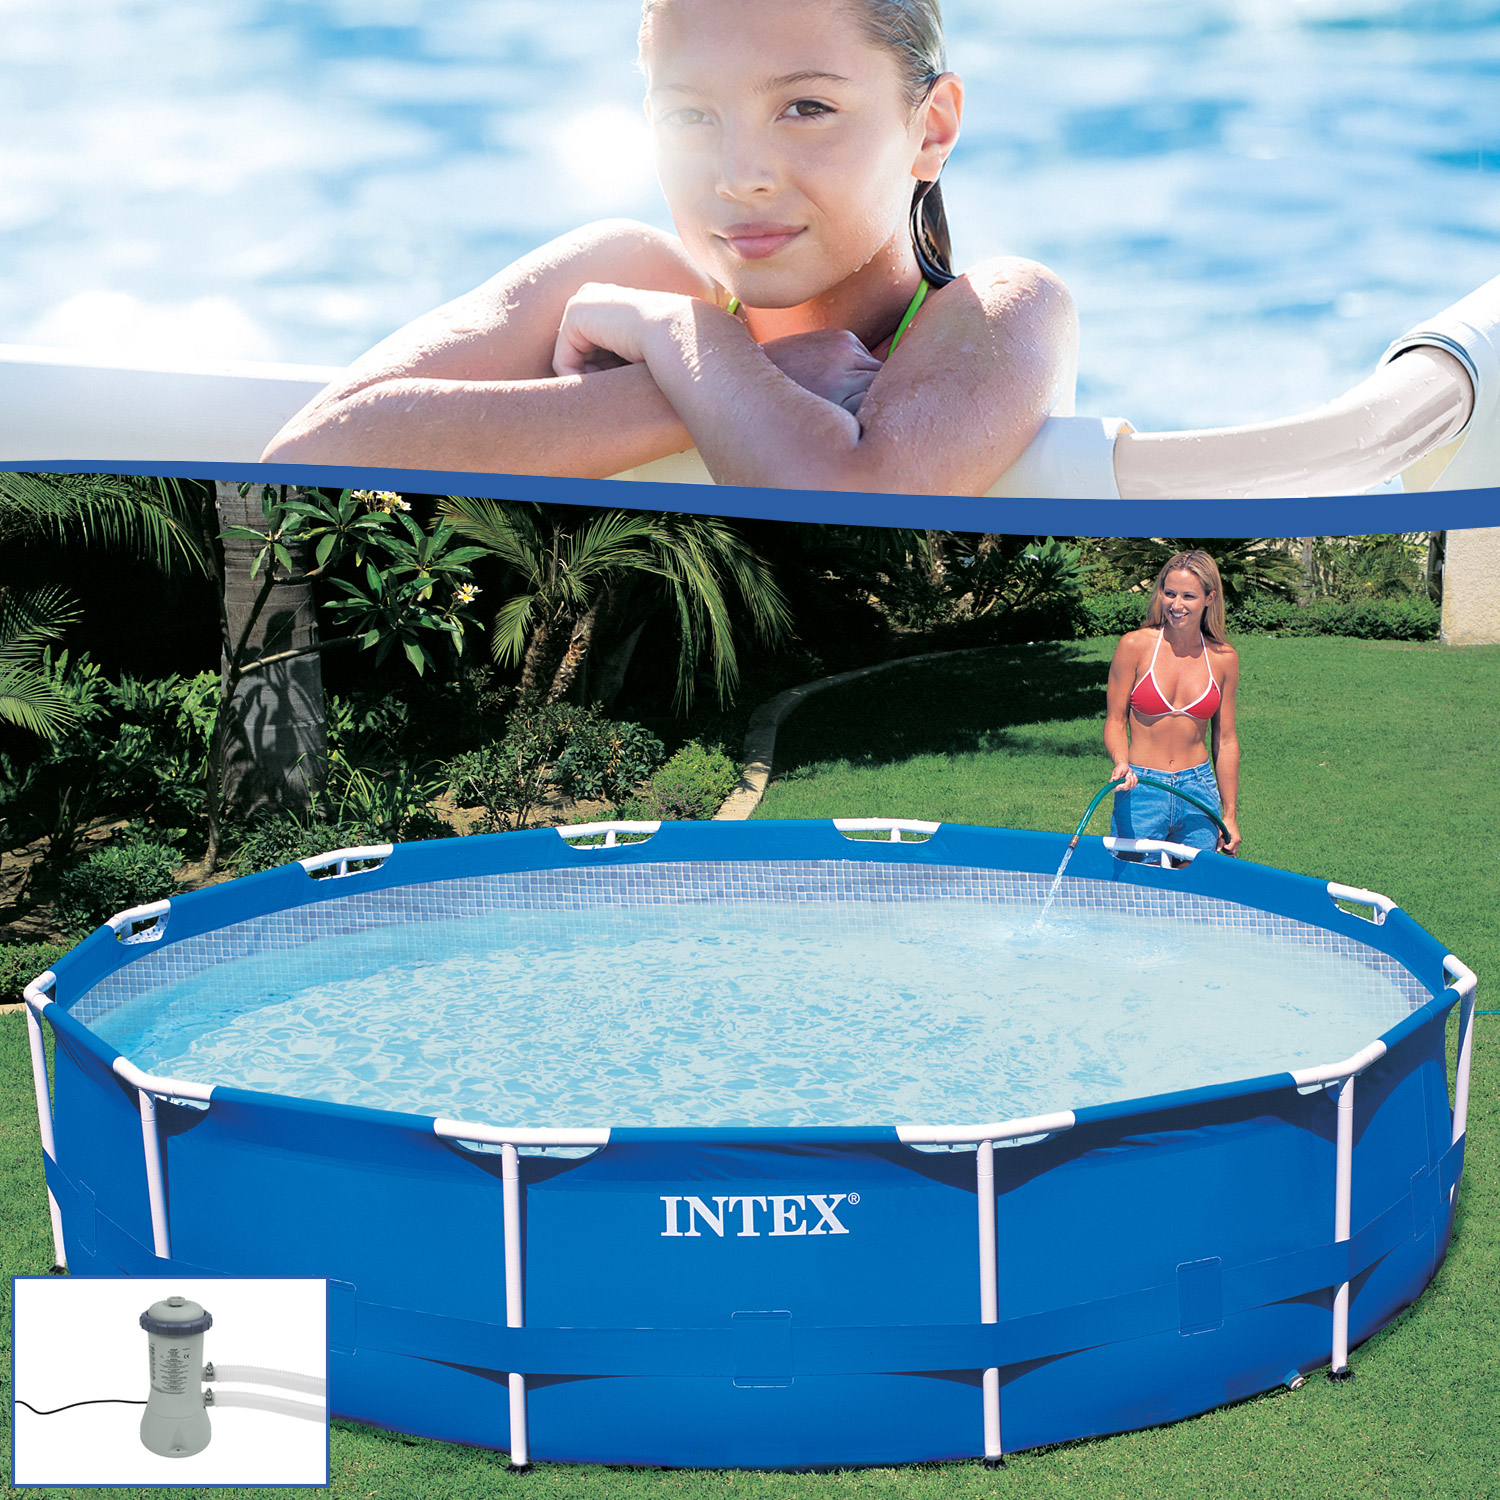 intex 366x76 stahlwand frame swimming pool schwimmbecken. Black Bedroom Furniture Sets. Home Design Ideas